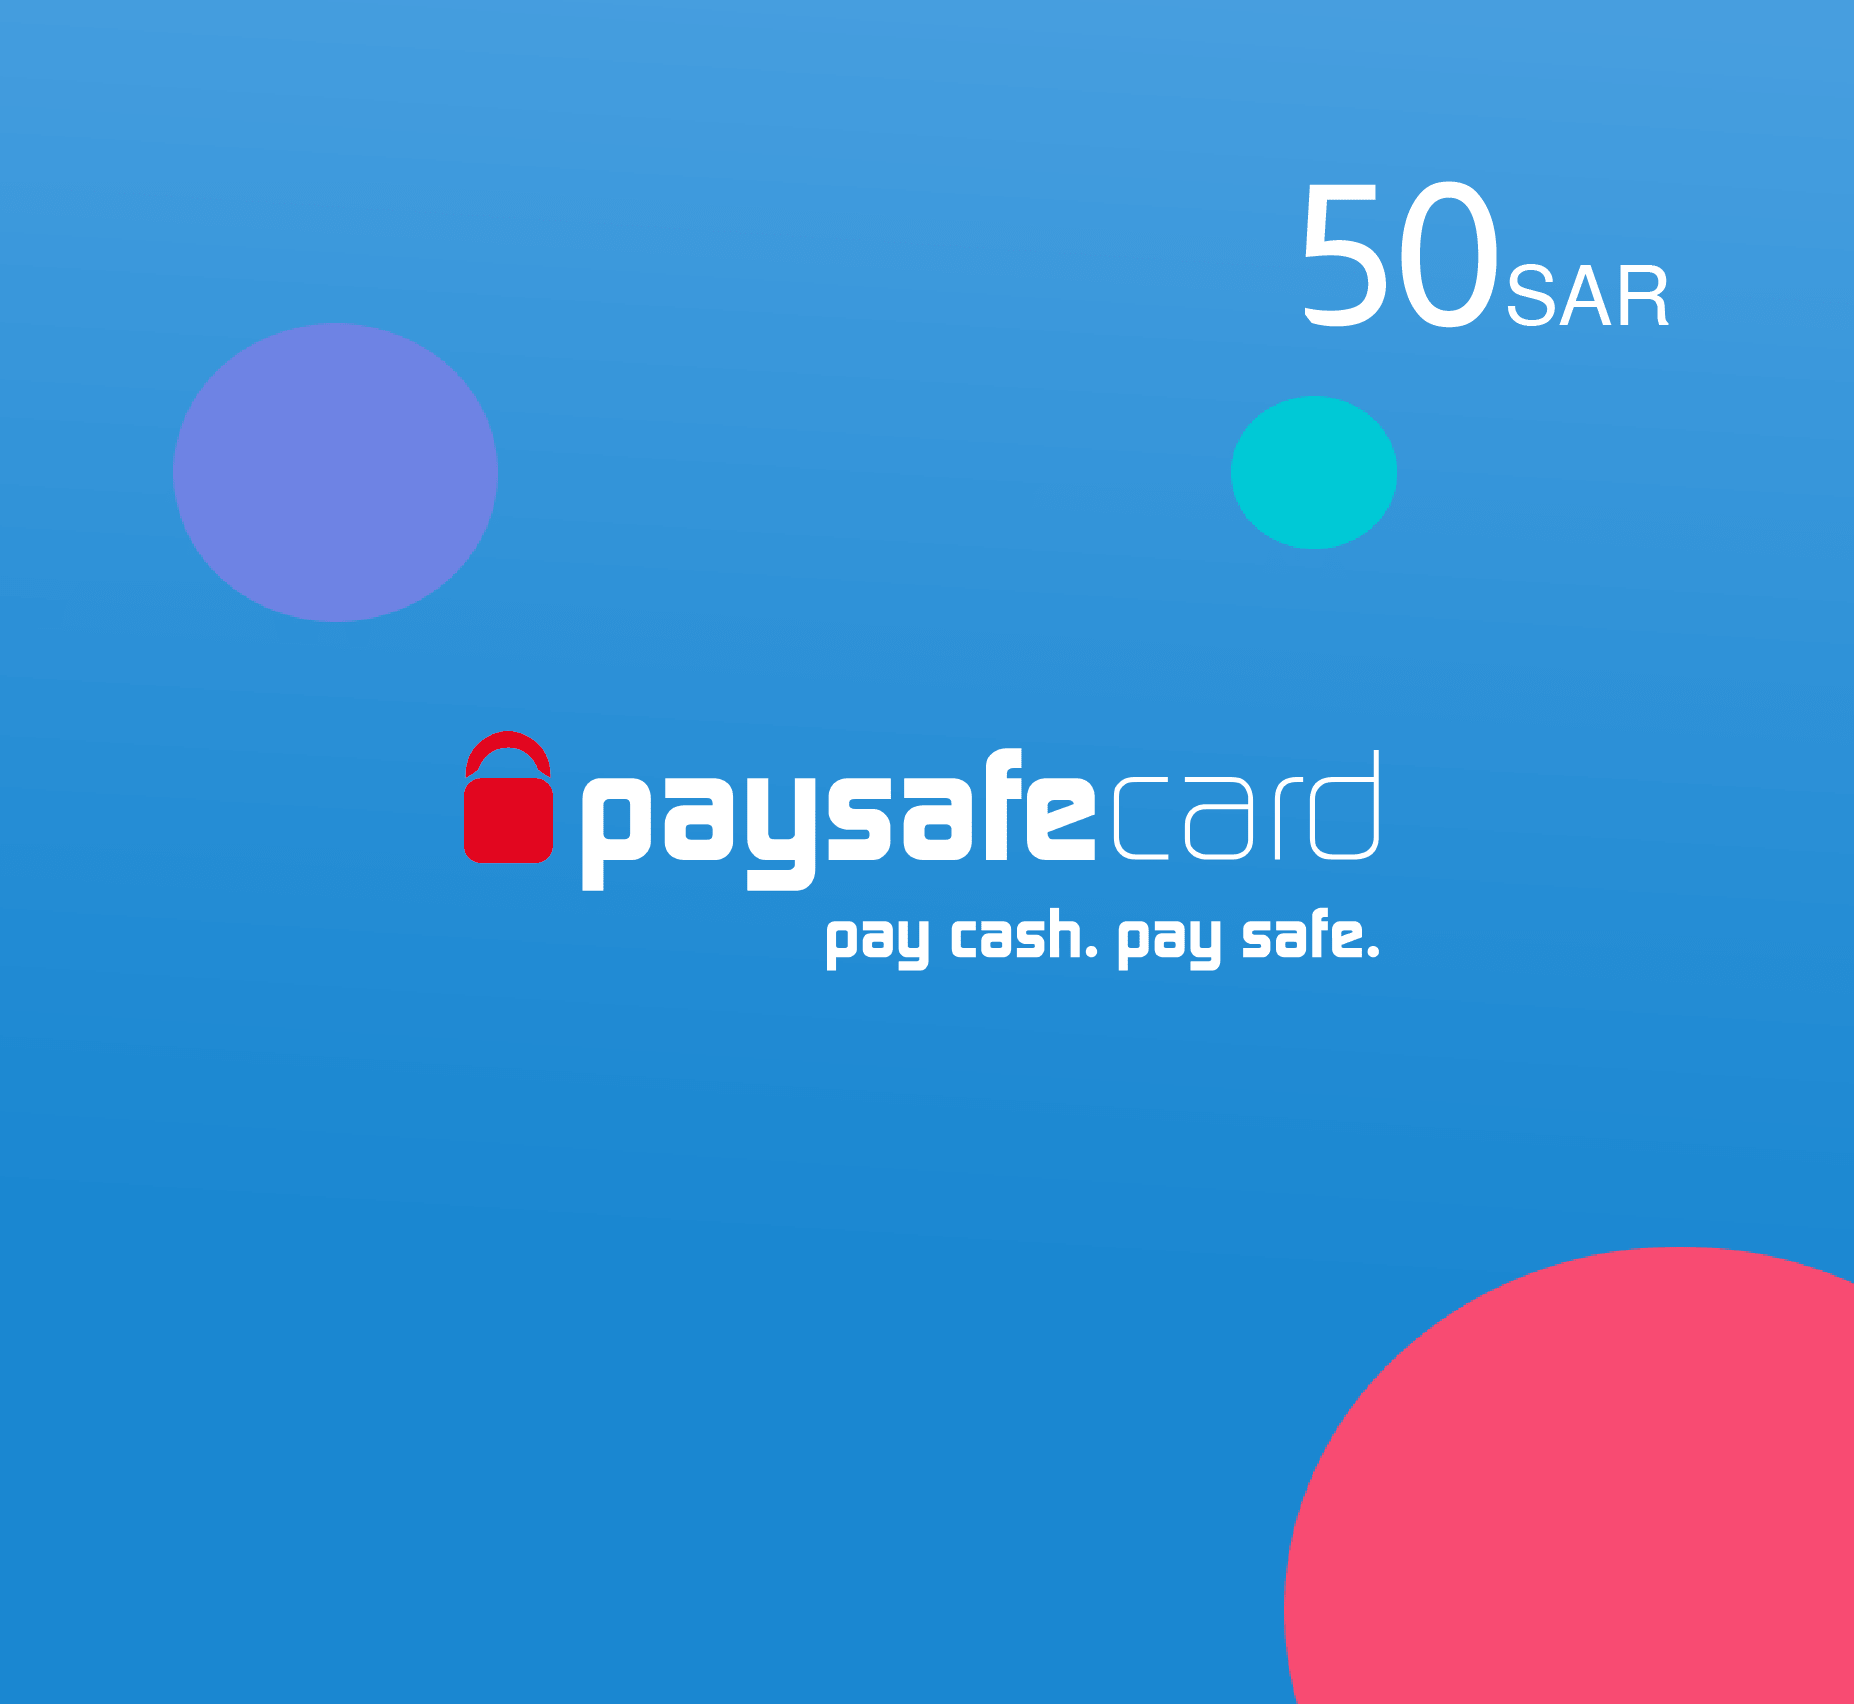 Paysafe card 50 SAR